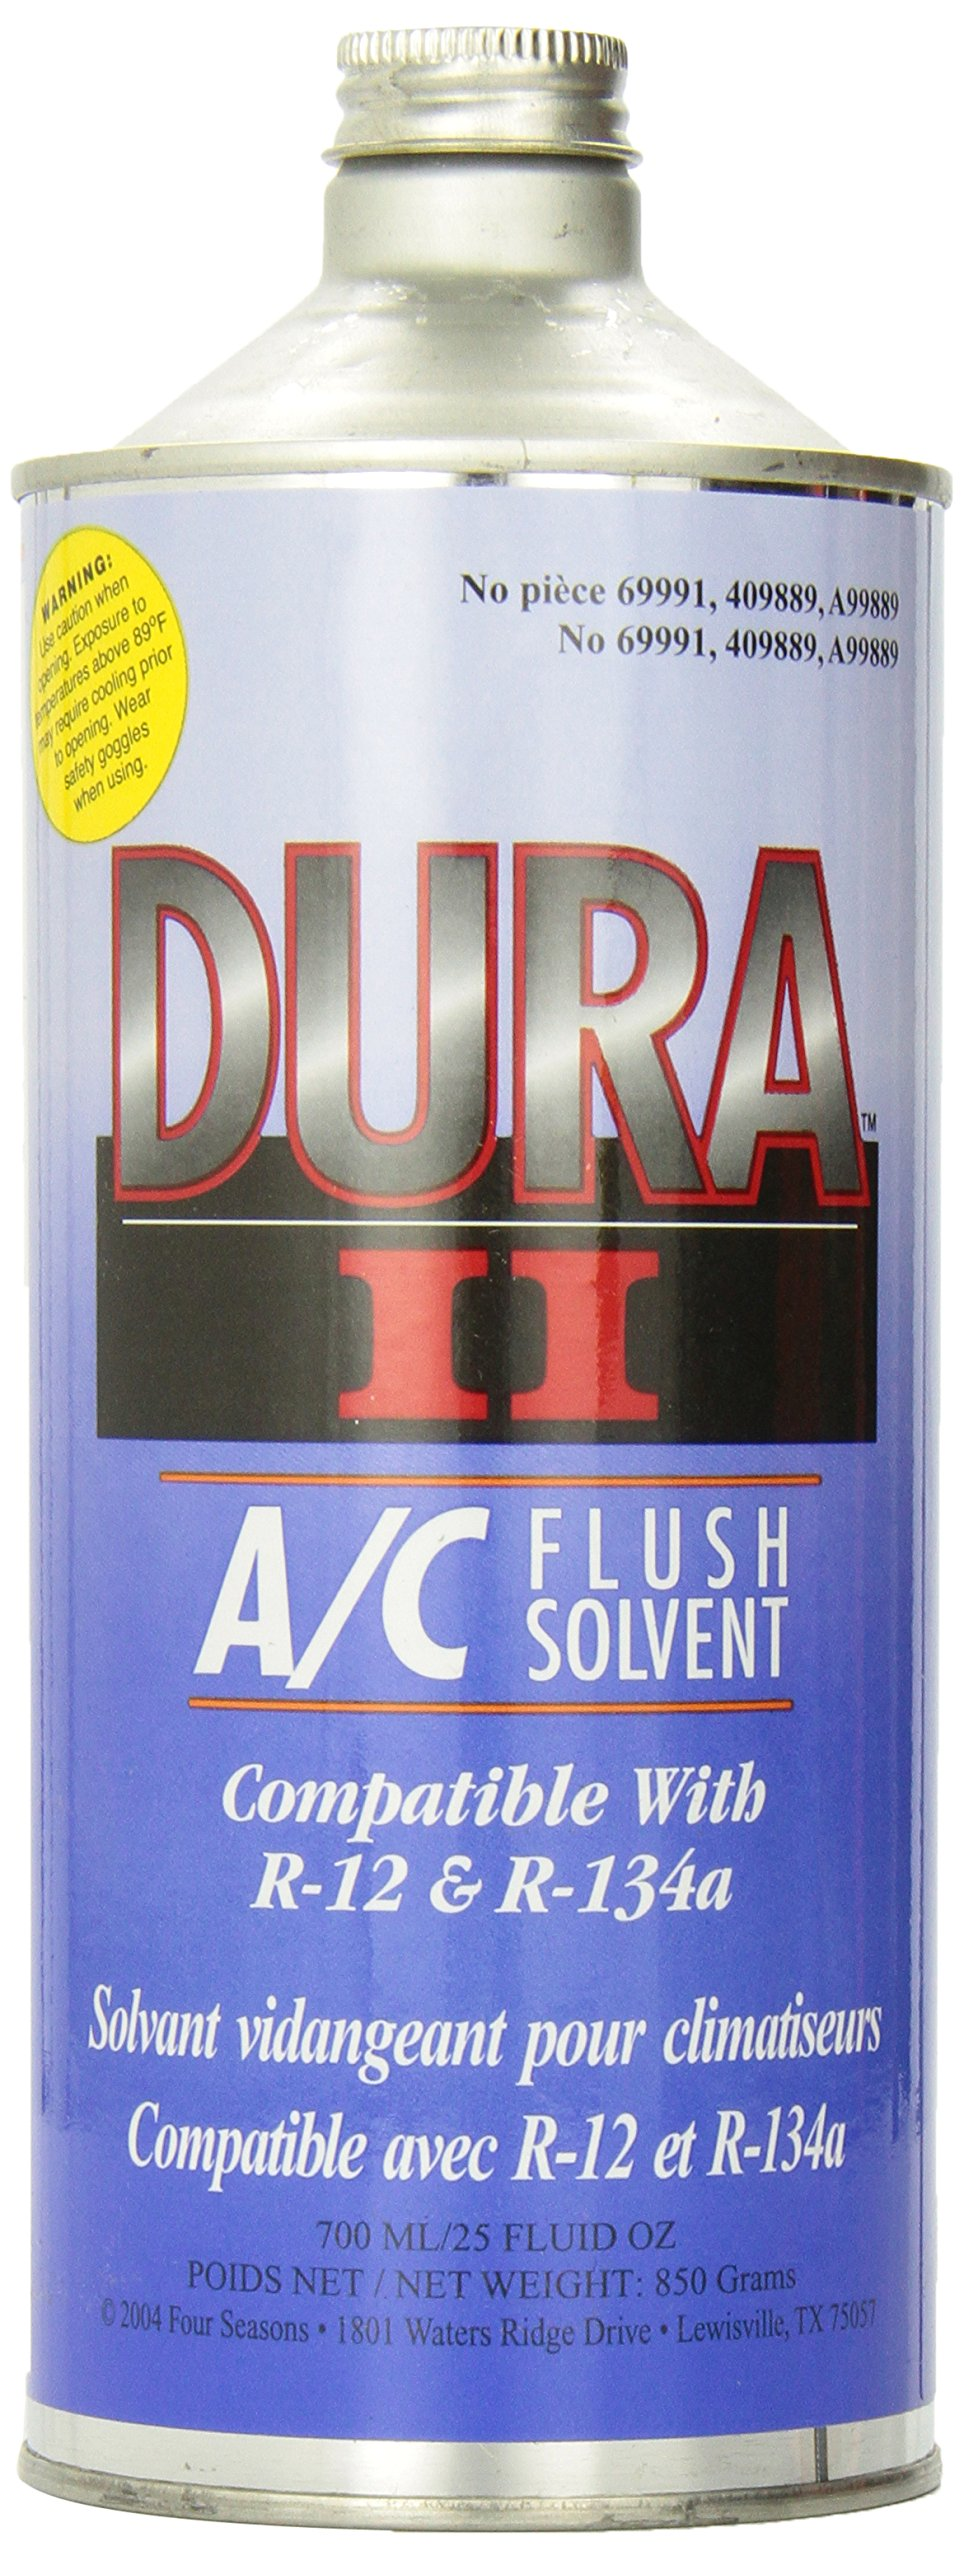 Four Seasons 69991 Dura II Flush Solvent - 25 oz by Four Seasons (Image #1)